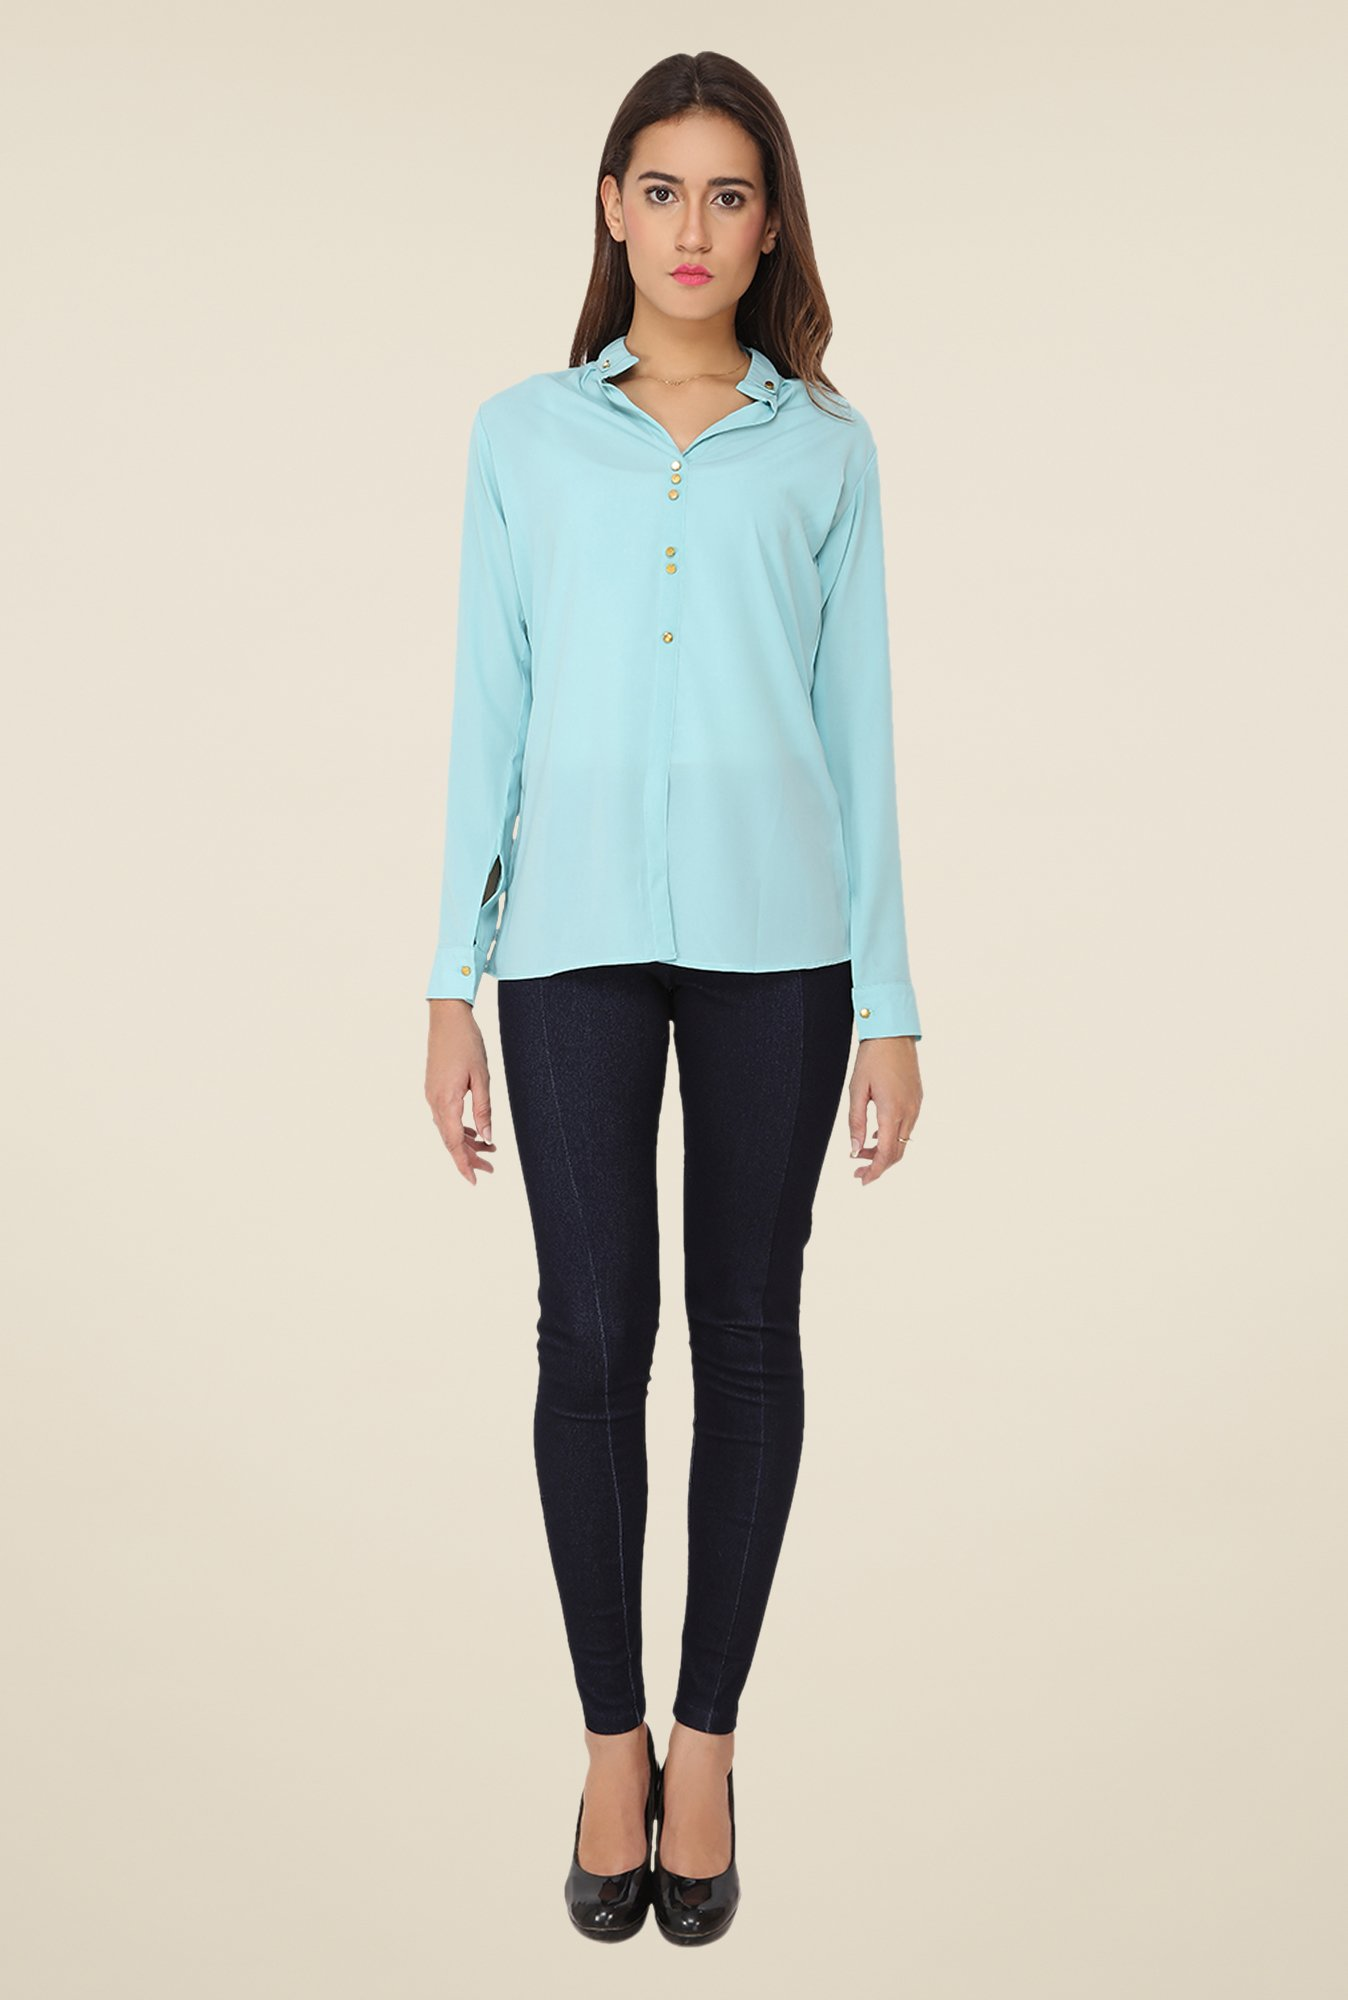 Soie Sky Blue Solid Top